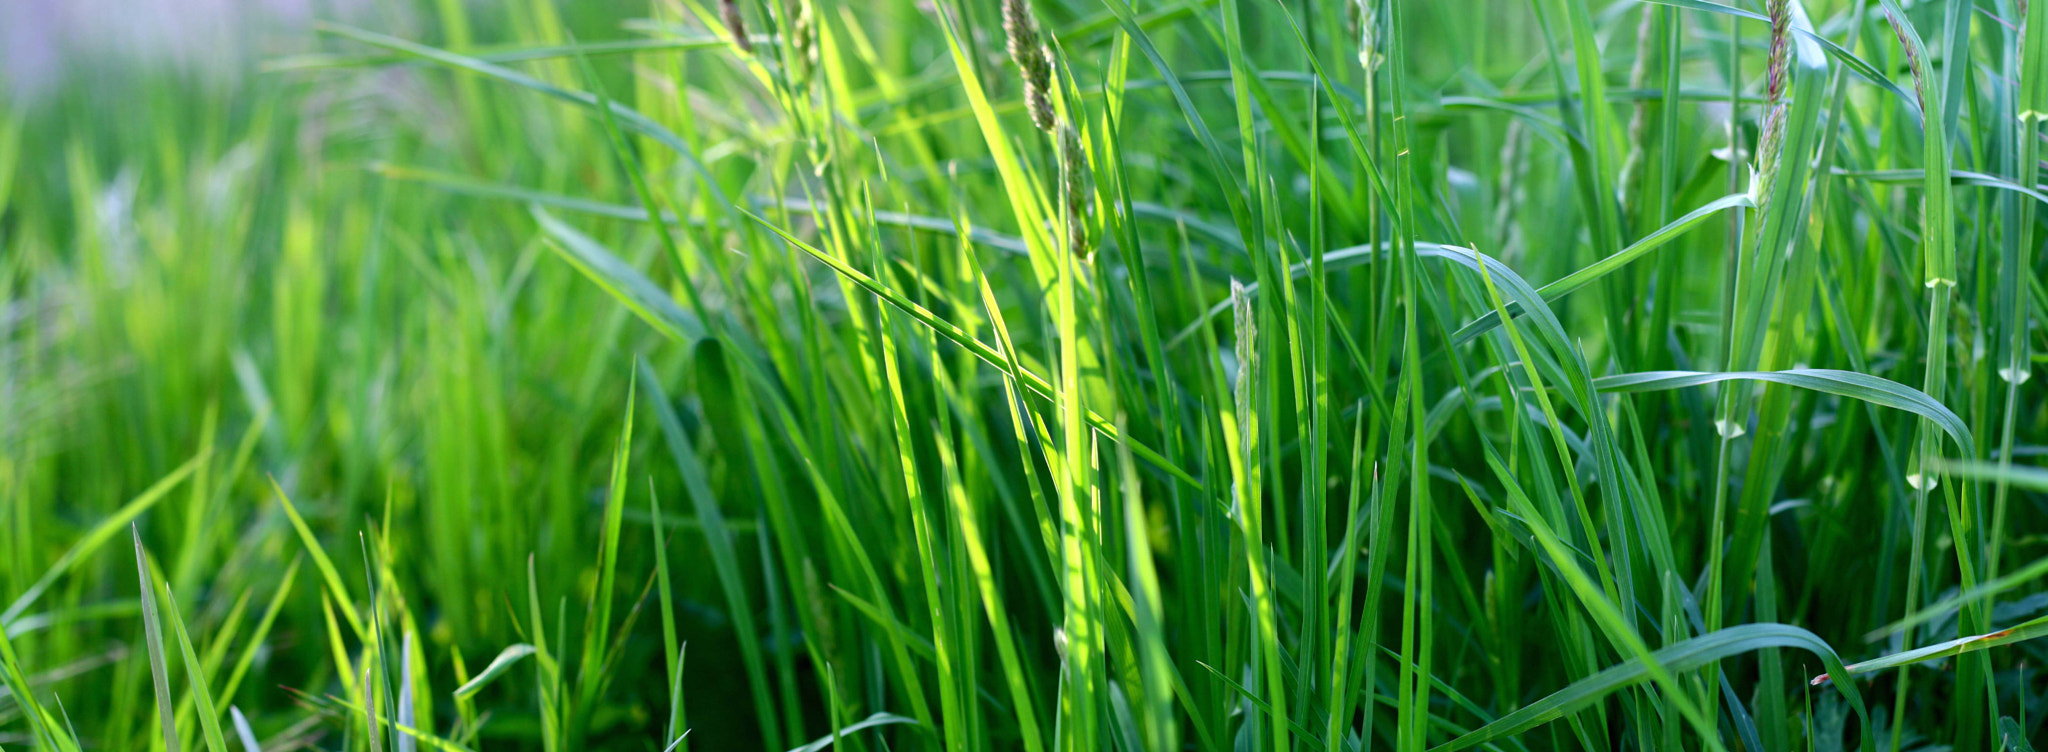 Photograph Grass by landro on 500px